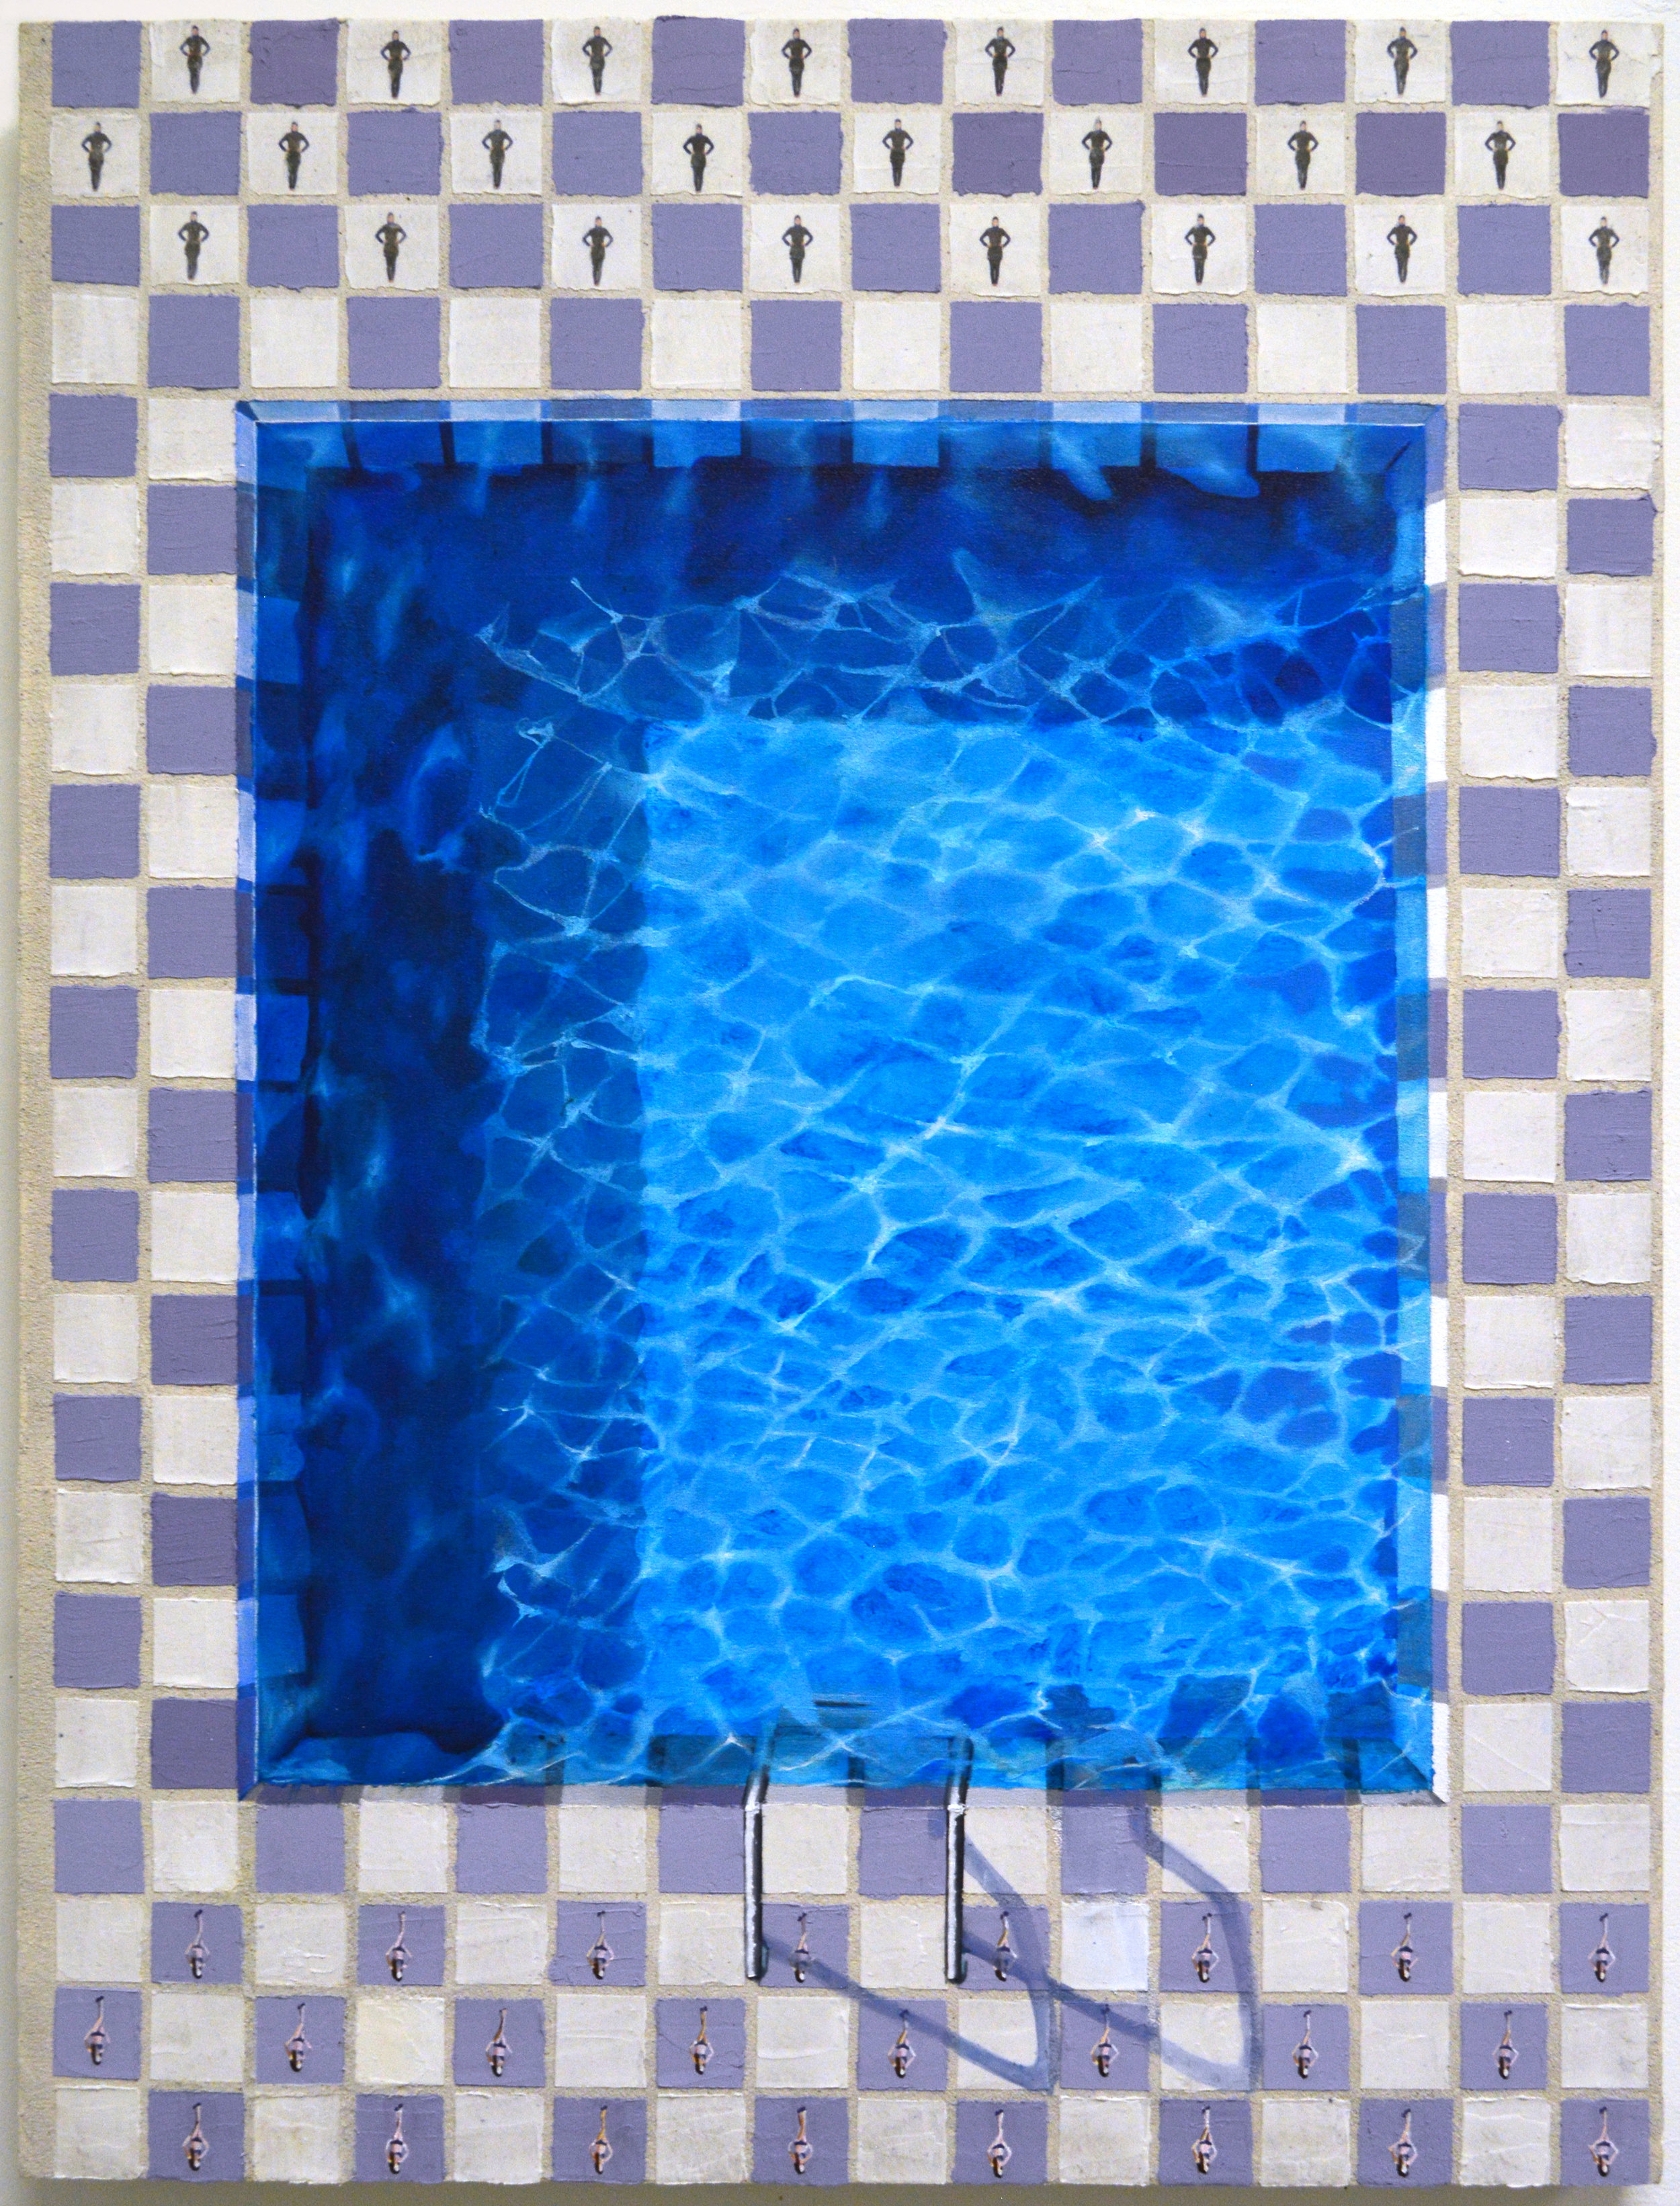 Pool Checkers  oil, acrylic, plaster, sand, and cement on canvas  38IN X 29IN